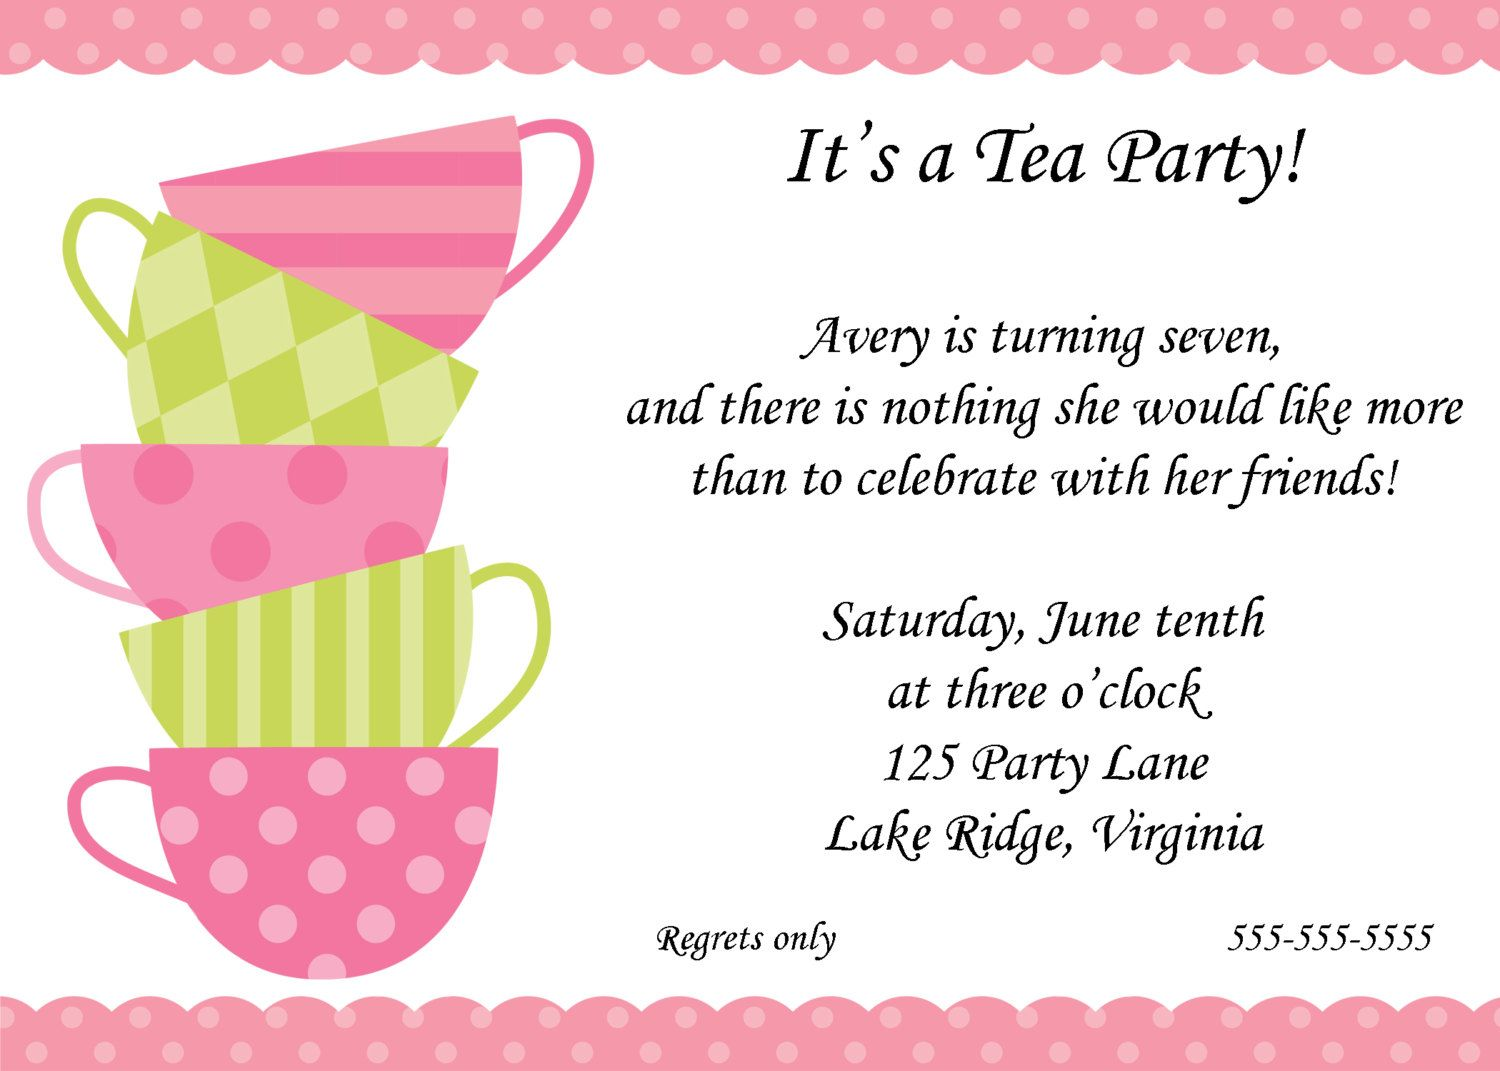 pictures printable mad hatter tea party invitations ideas pinterest